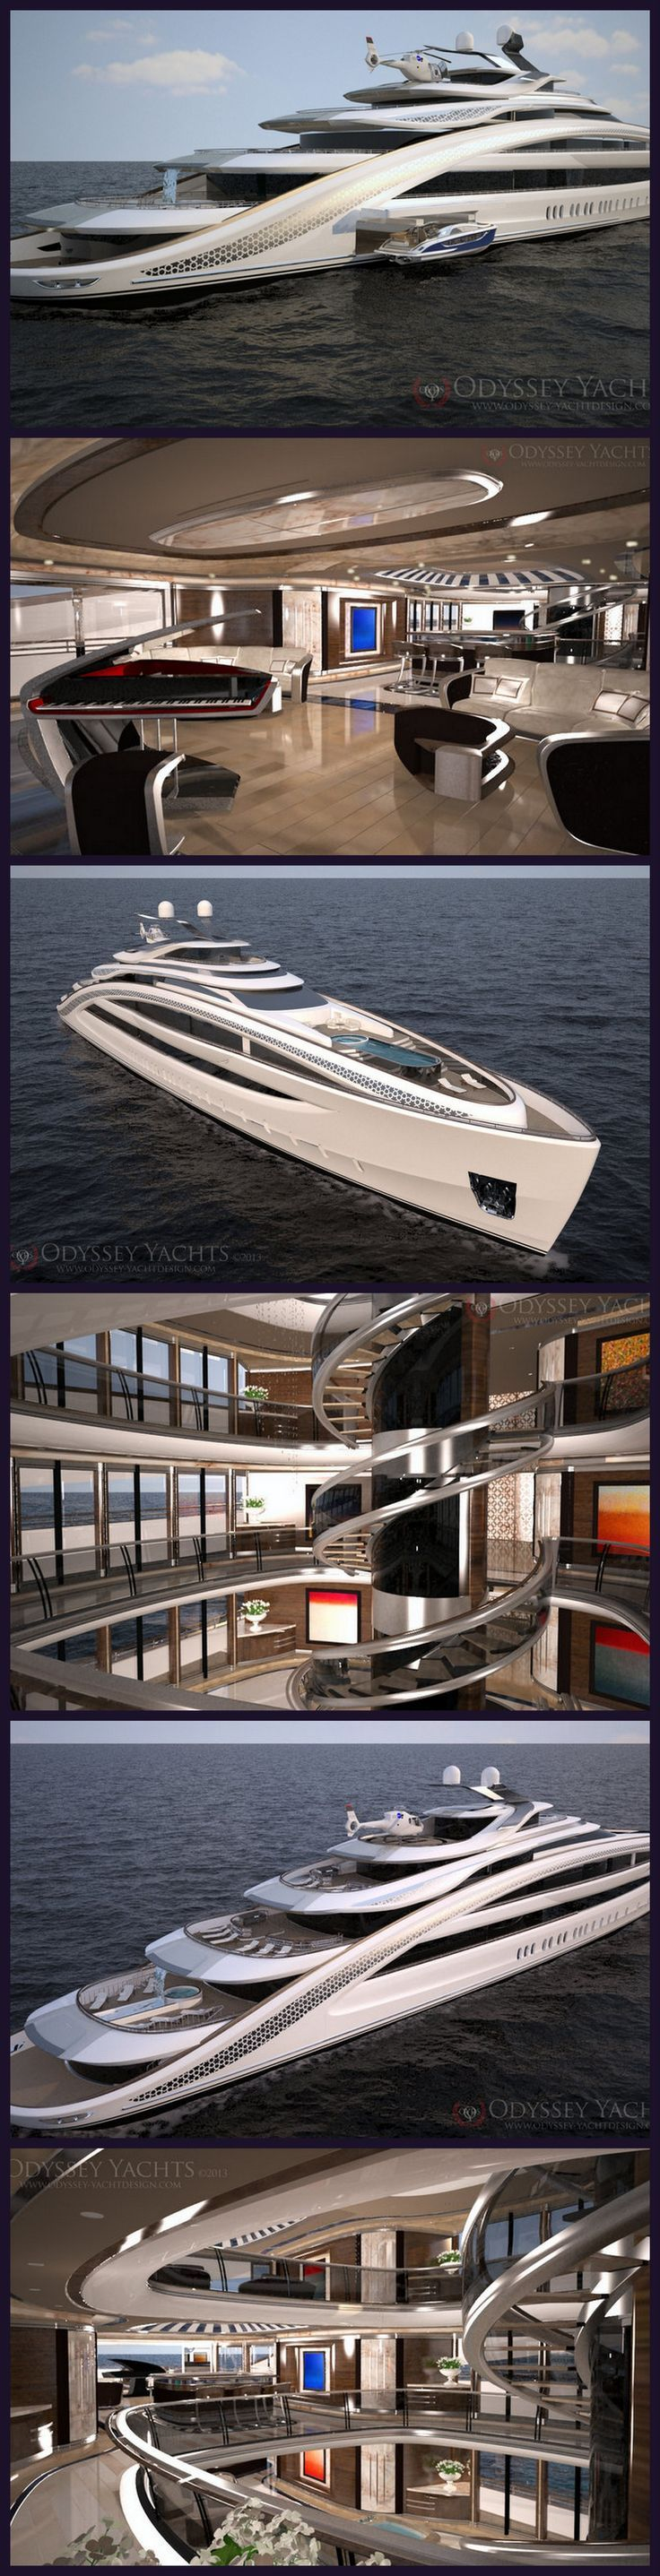 Odyssey #Yachts announce release of 95m Motor #Yacht 'Nautilus' project Really?! Really?! Are you freaking kidding me!